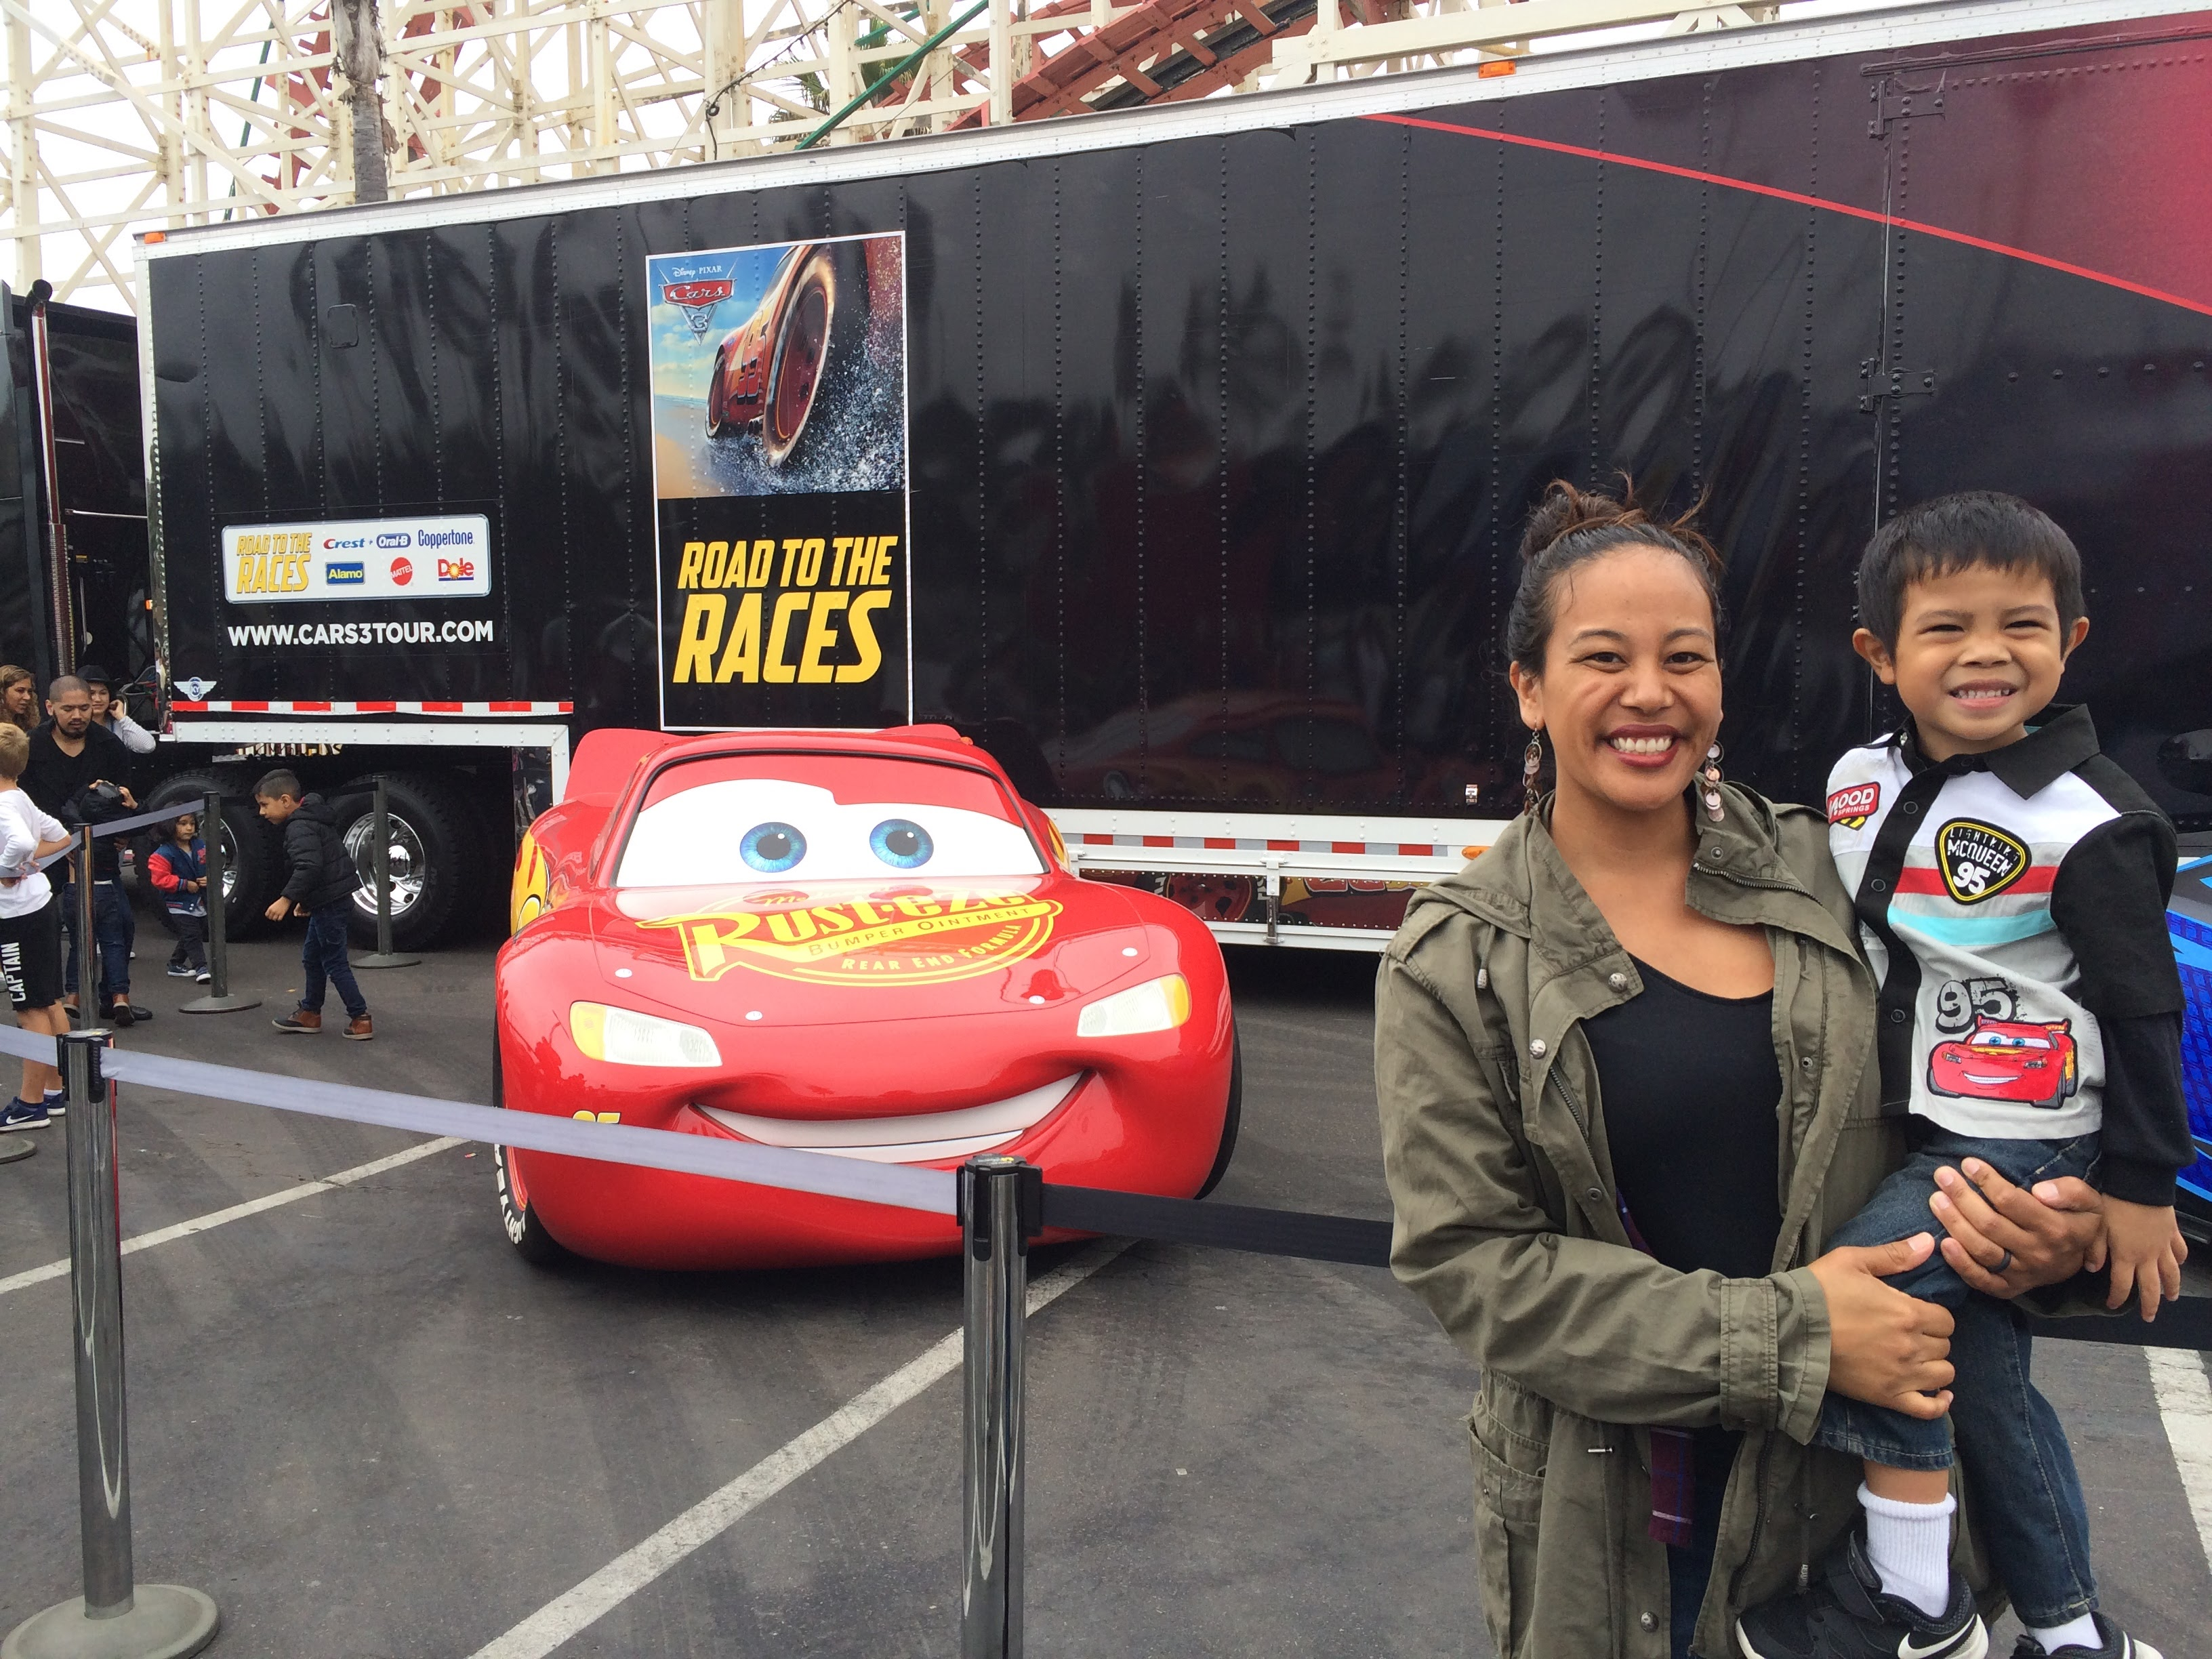 pixar 39 cars 3 39 makes san diego pit stop on nationwide road to the races tour. Black Bedroom Furniture Sets. Home Design Ideas